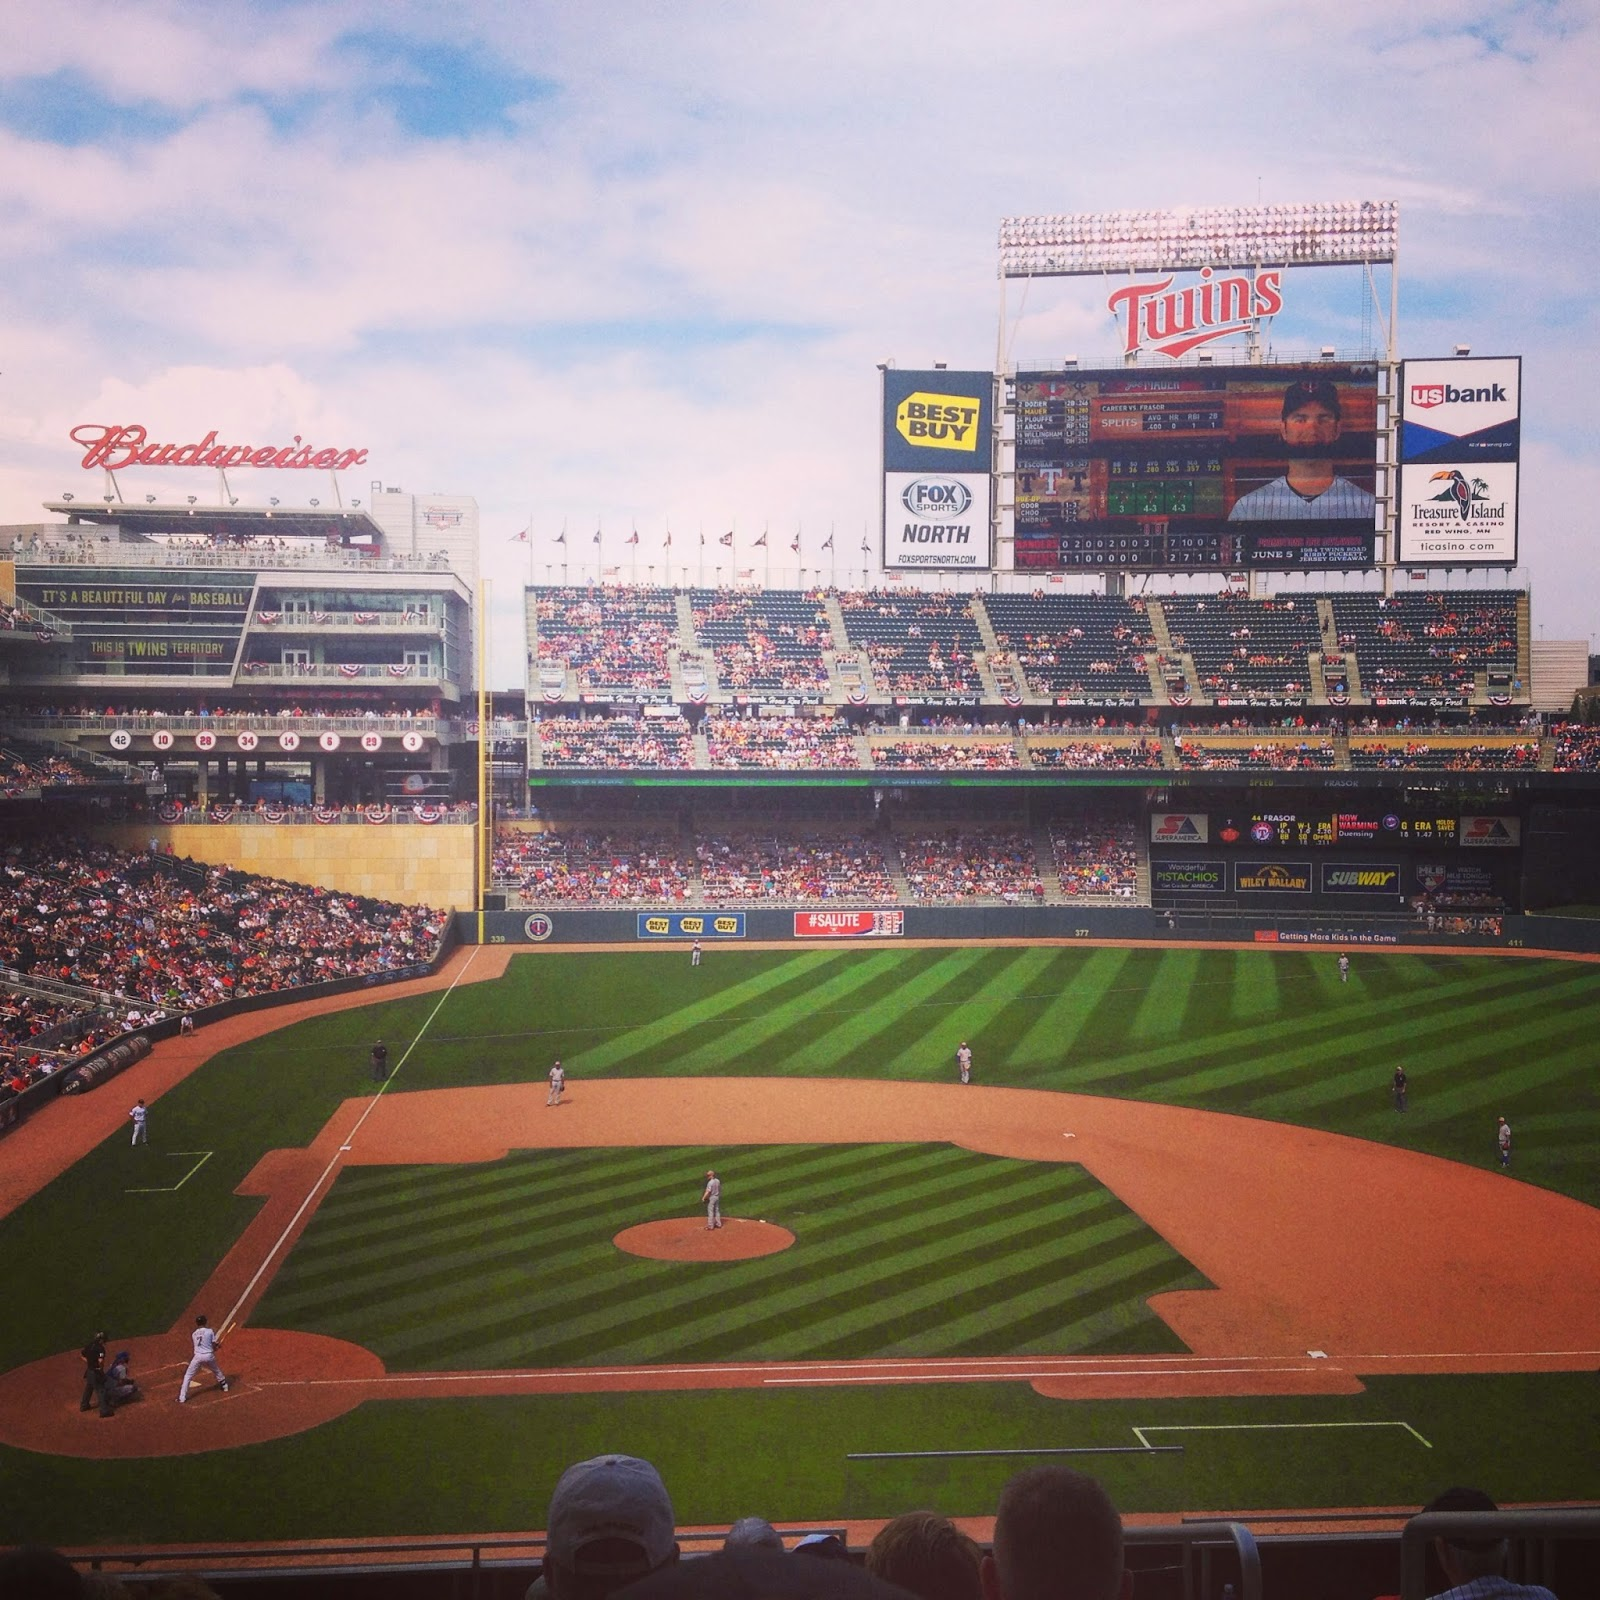 Memorial Day Twins baseball game